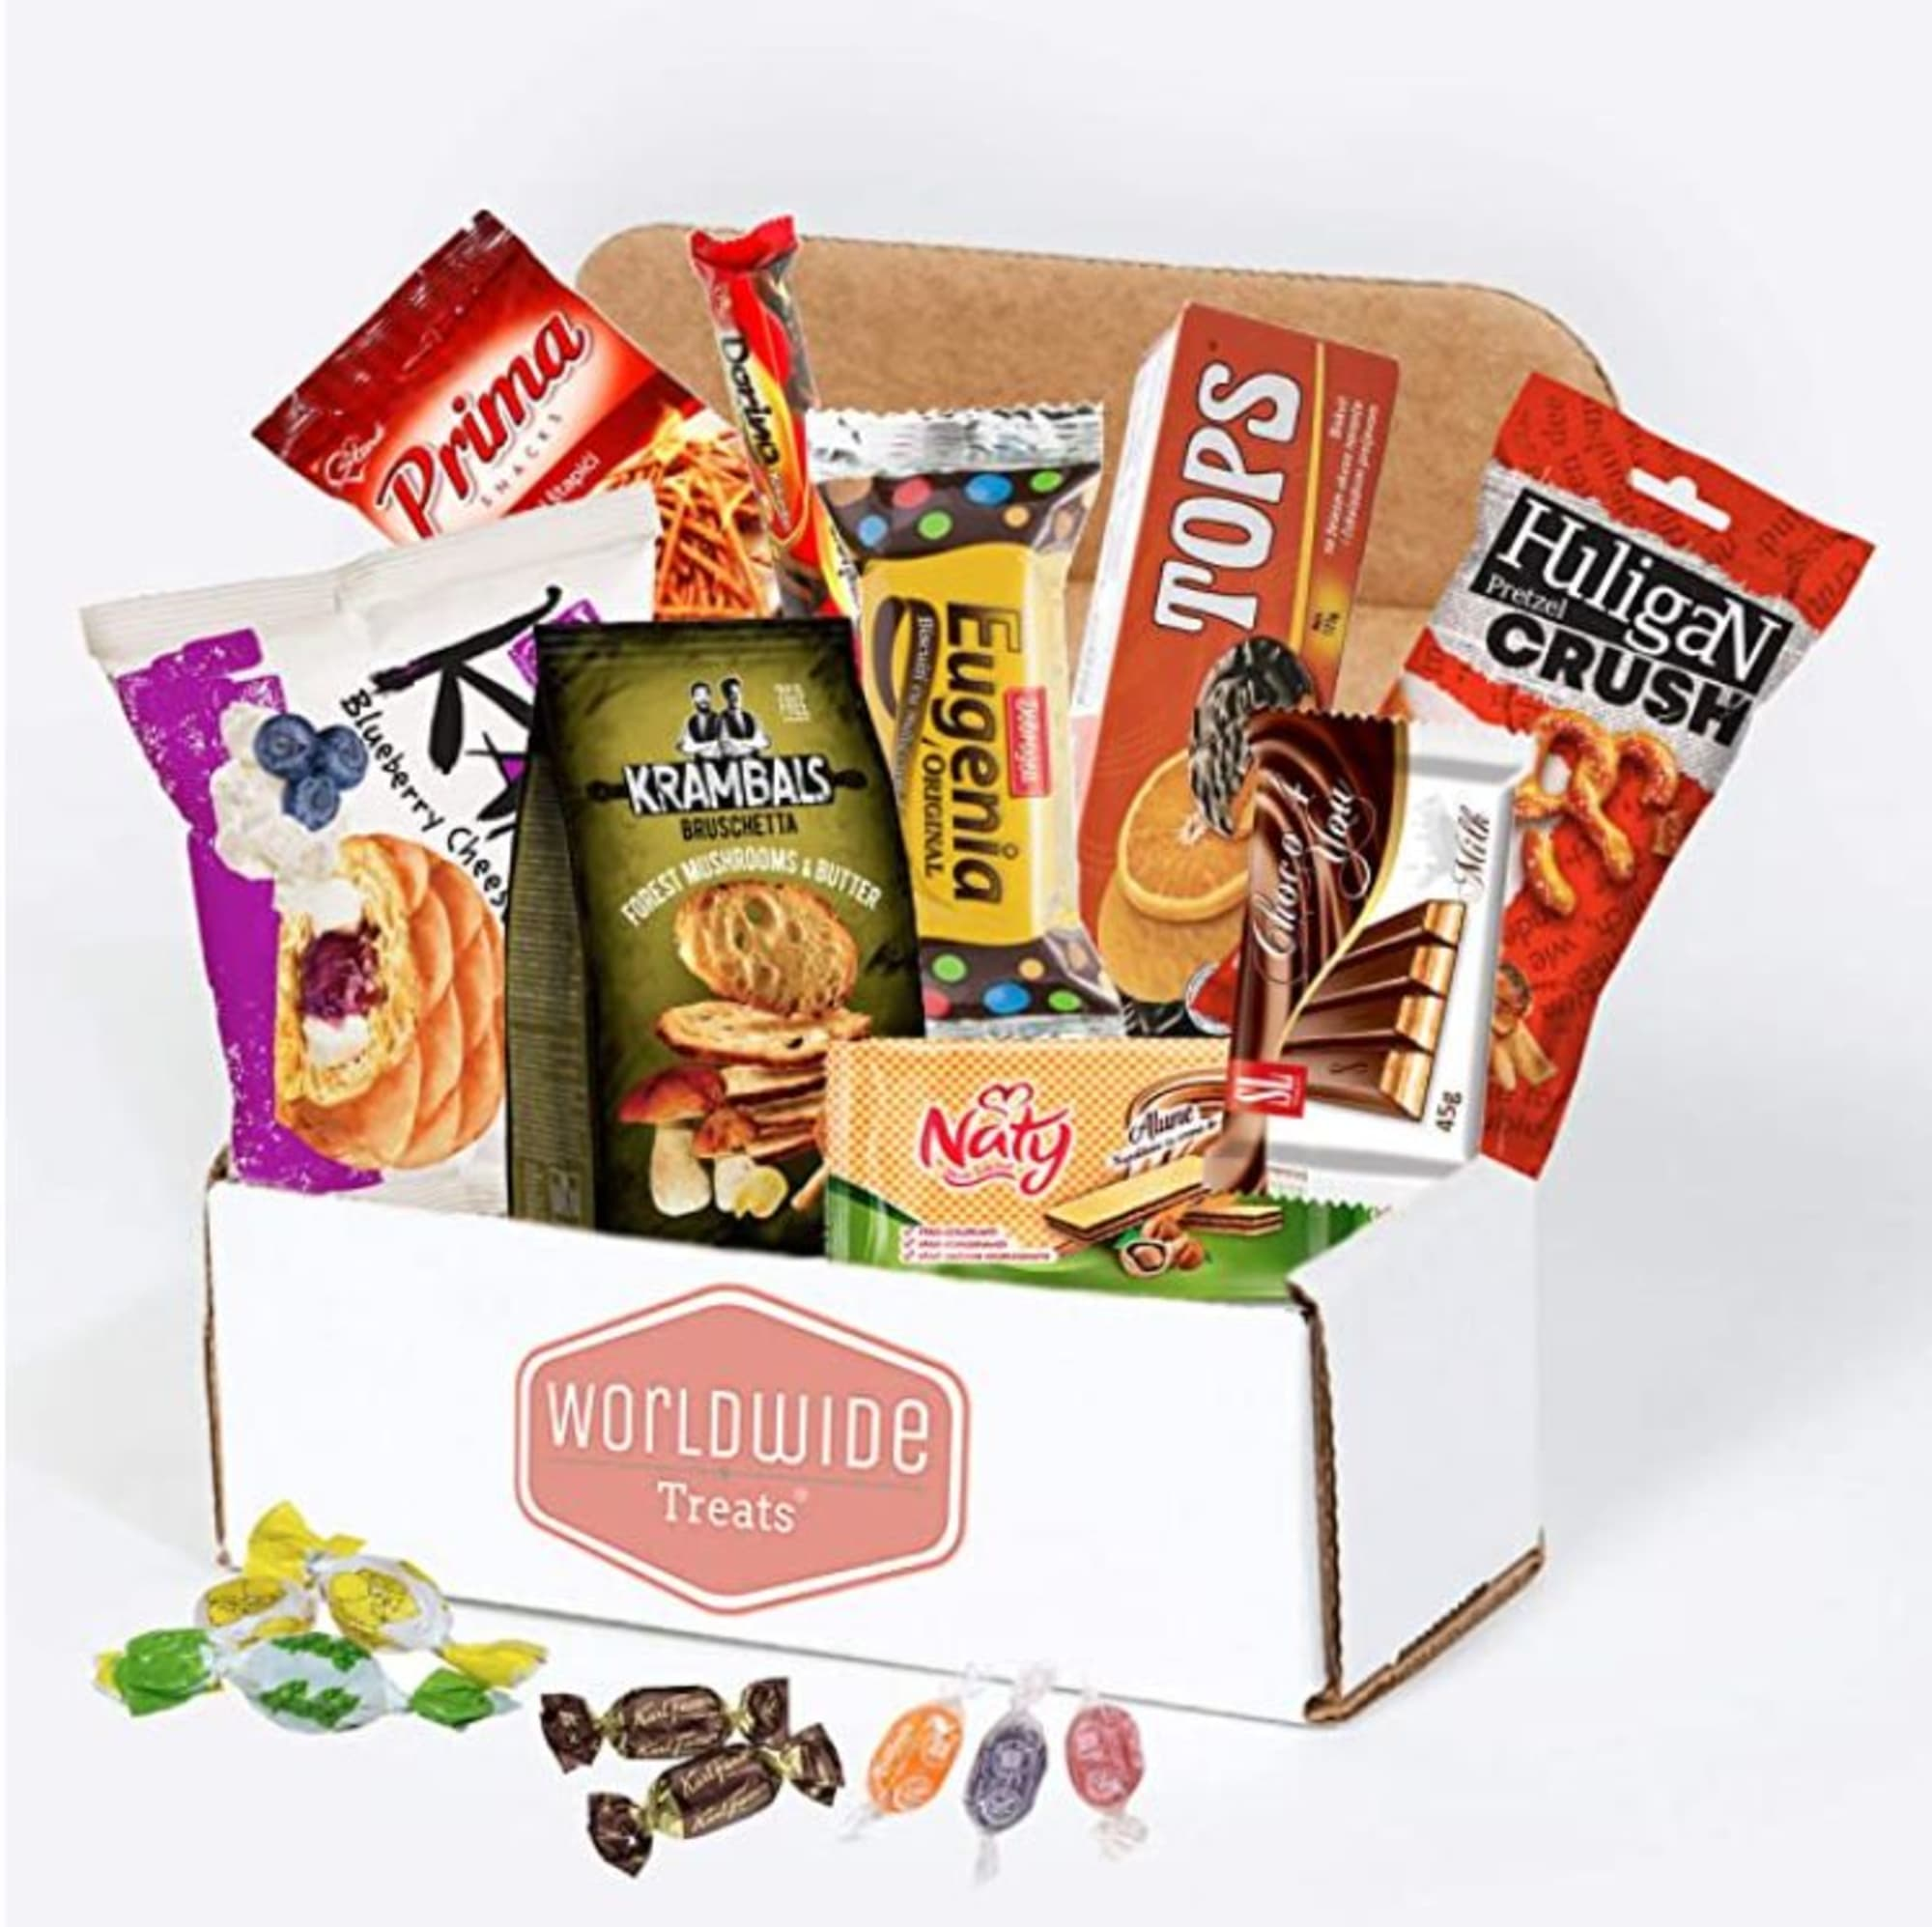 Travel the World From Your Home With These International Snack Subscription Boxes